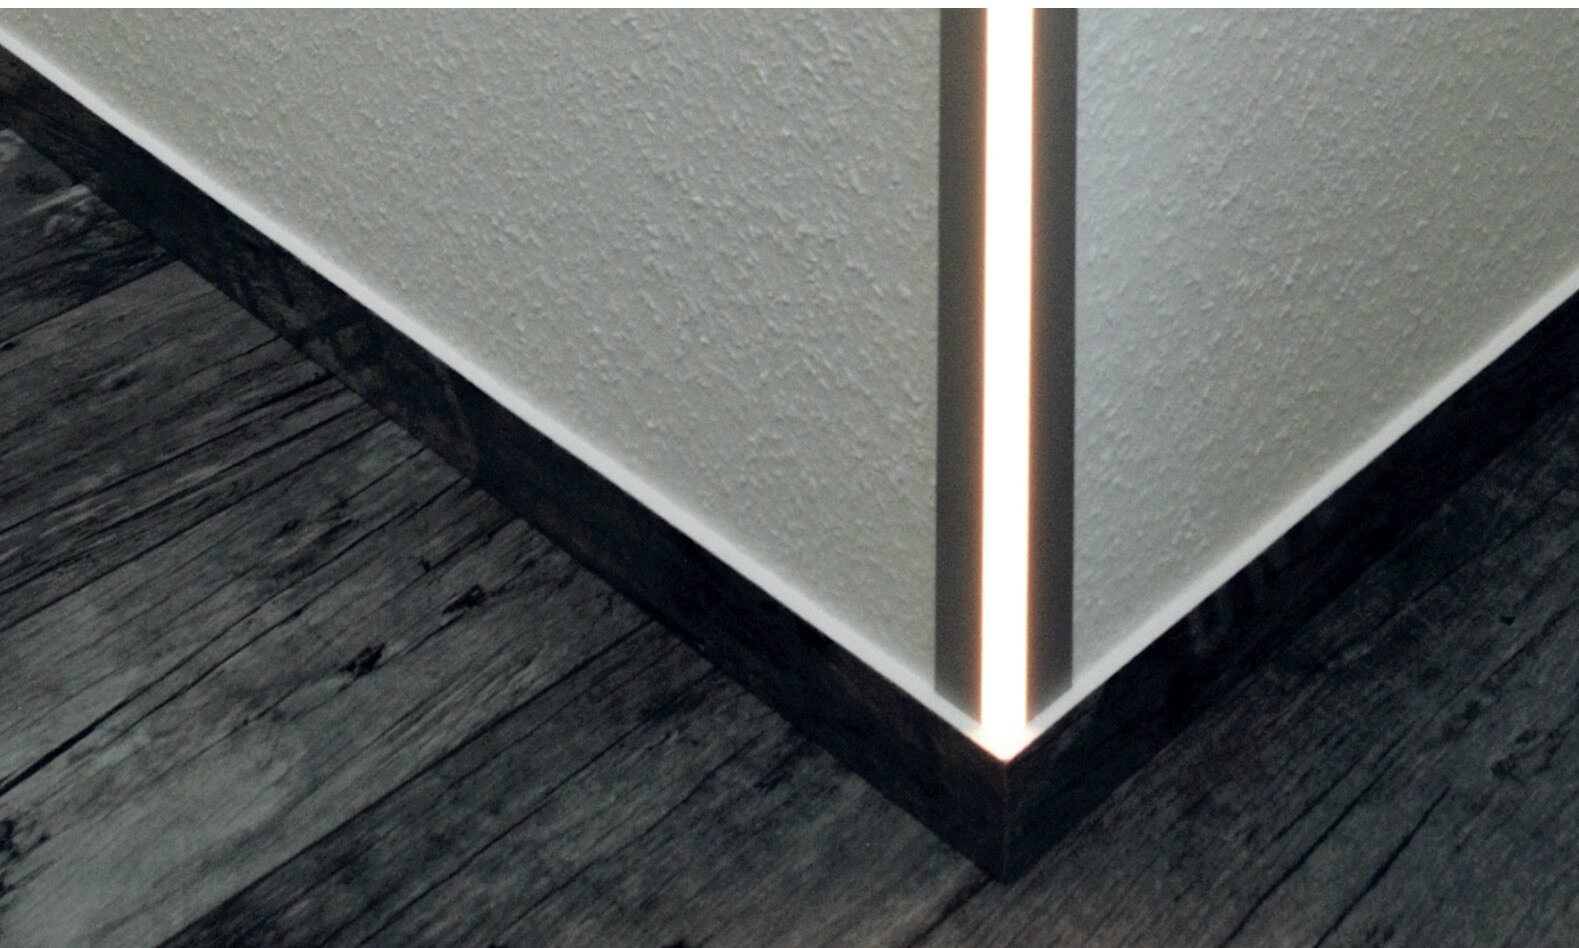 LED Mounting Channel Corner Aluminum Profile For Light Strip Waterproof Floor Stair And Grow